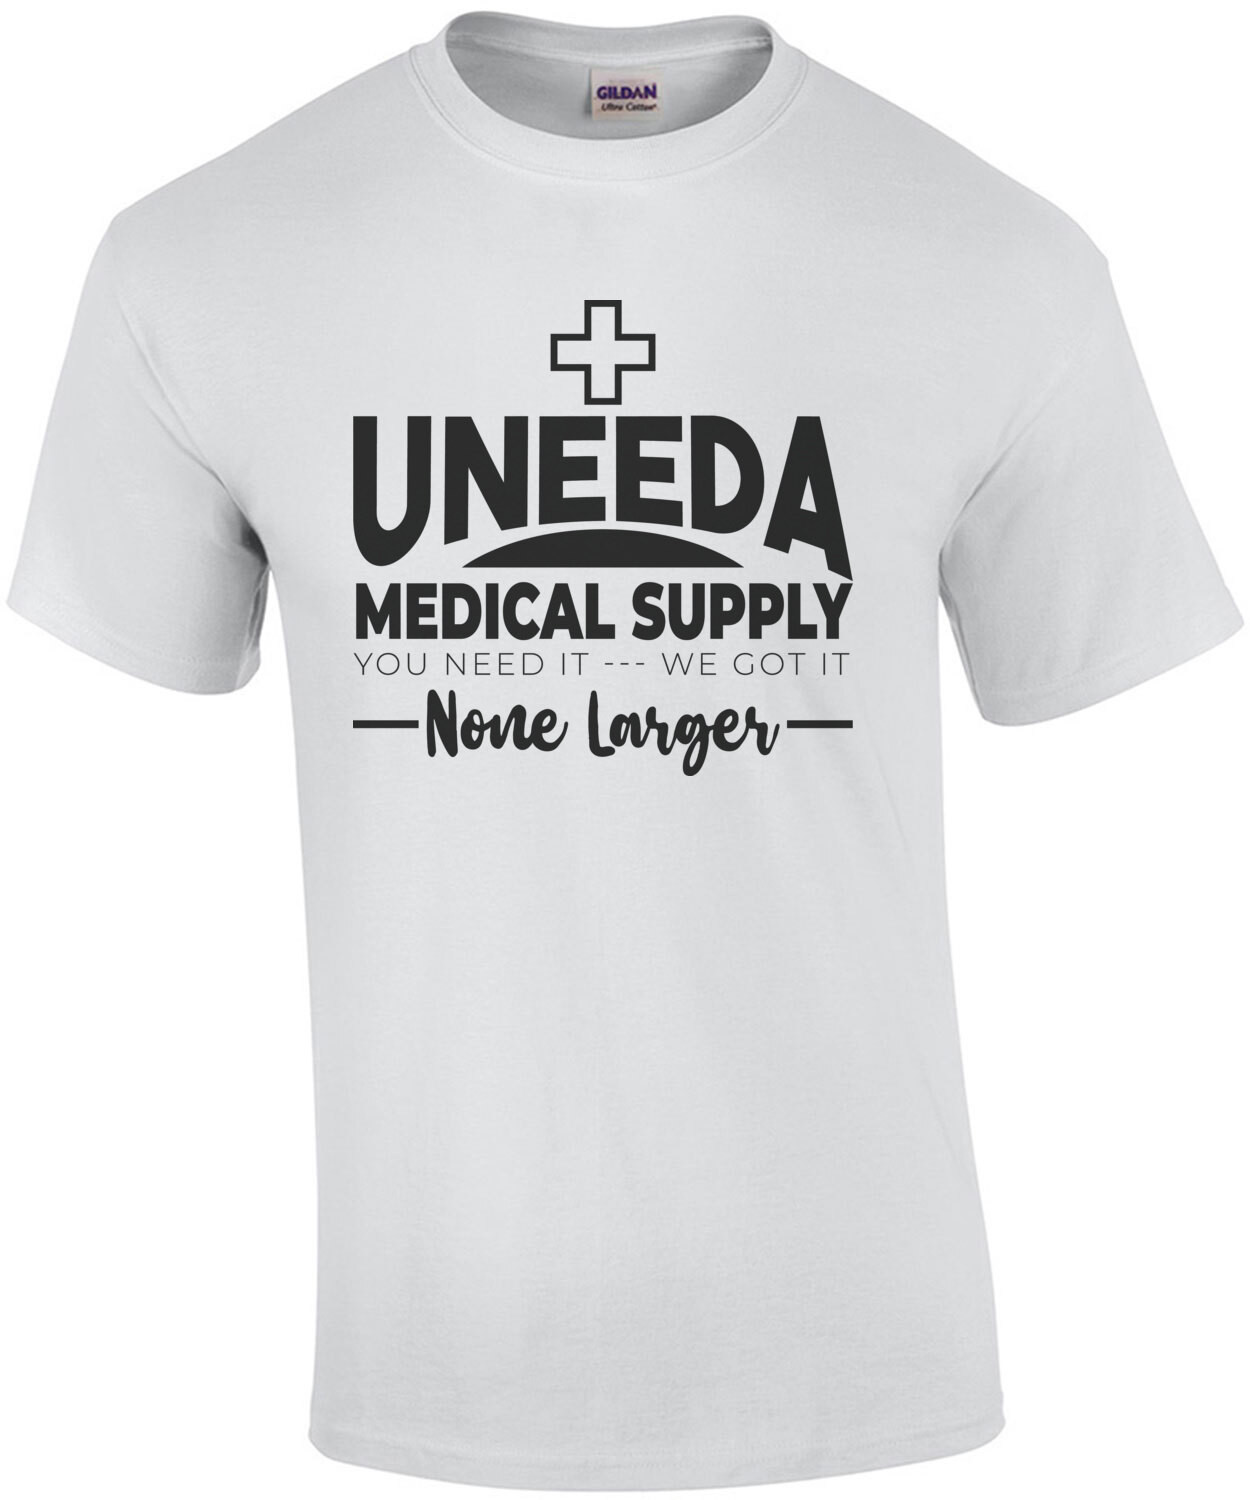 Uneeda Medical Supply - you need it - we got it - none larger - Return of the living dead - 80's T-Shirt